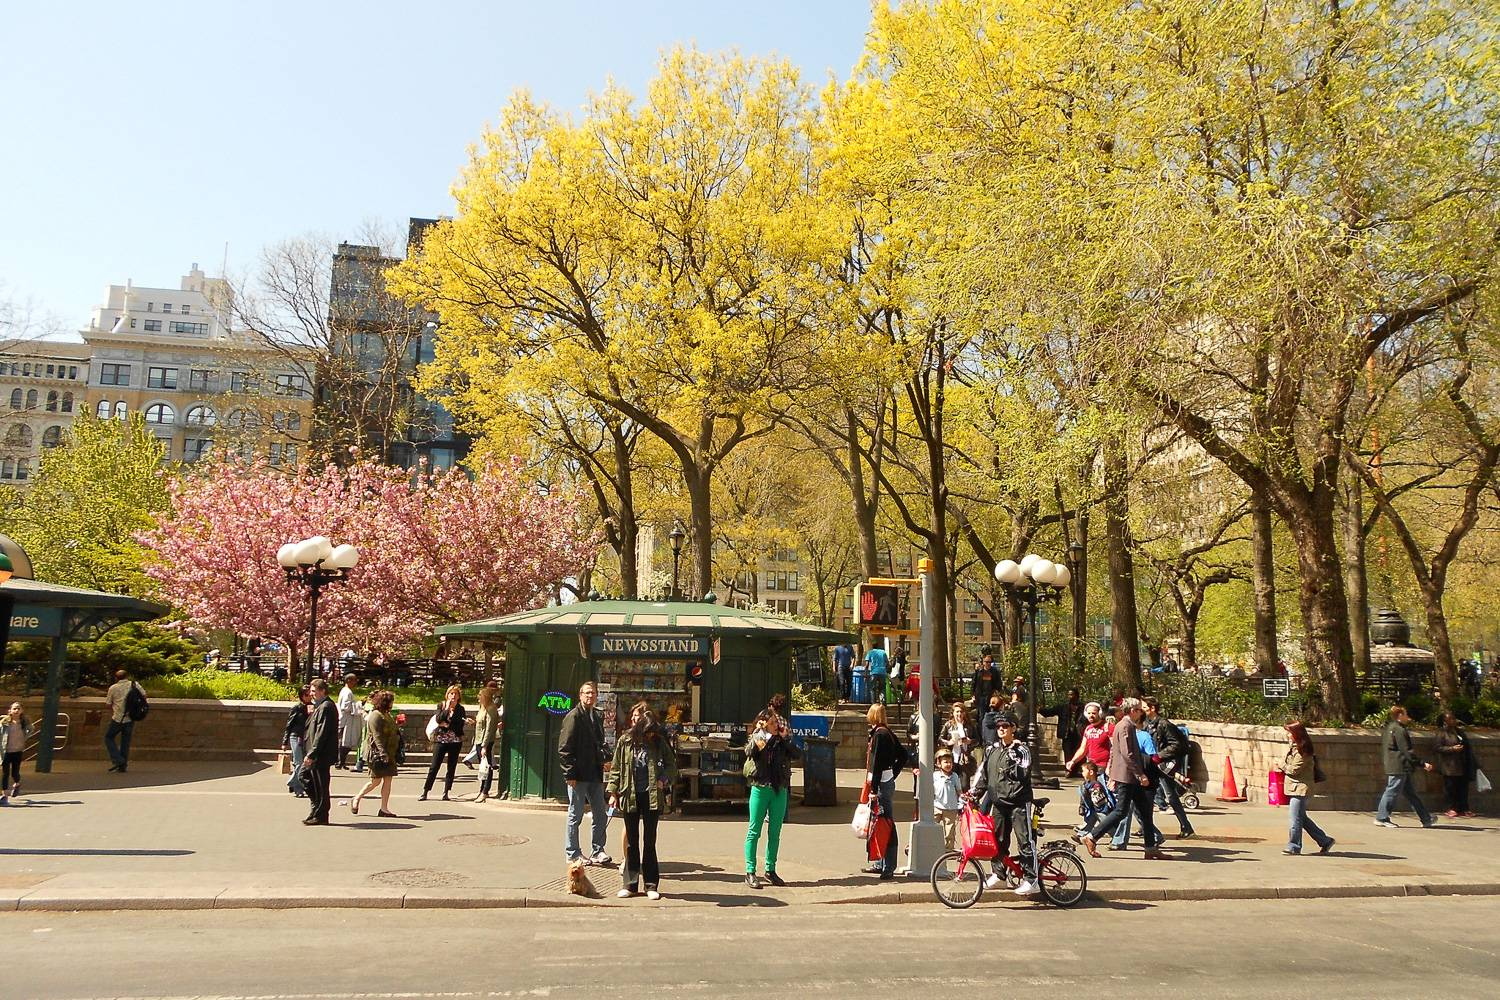 Image of a street view of Union Square park in springtime.